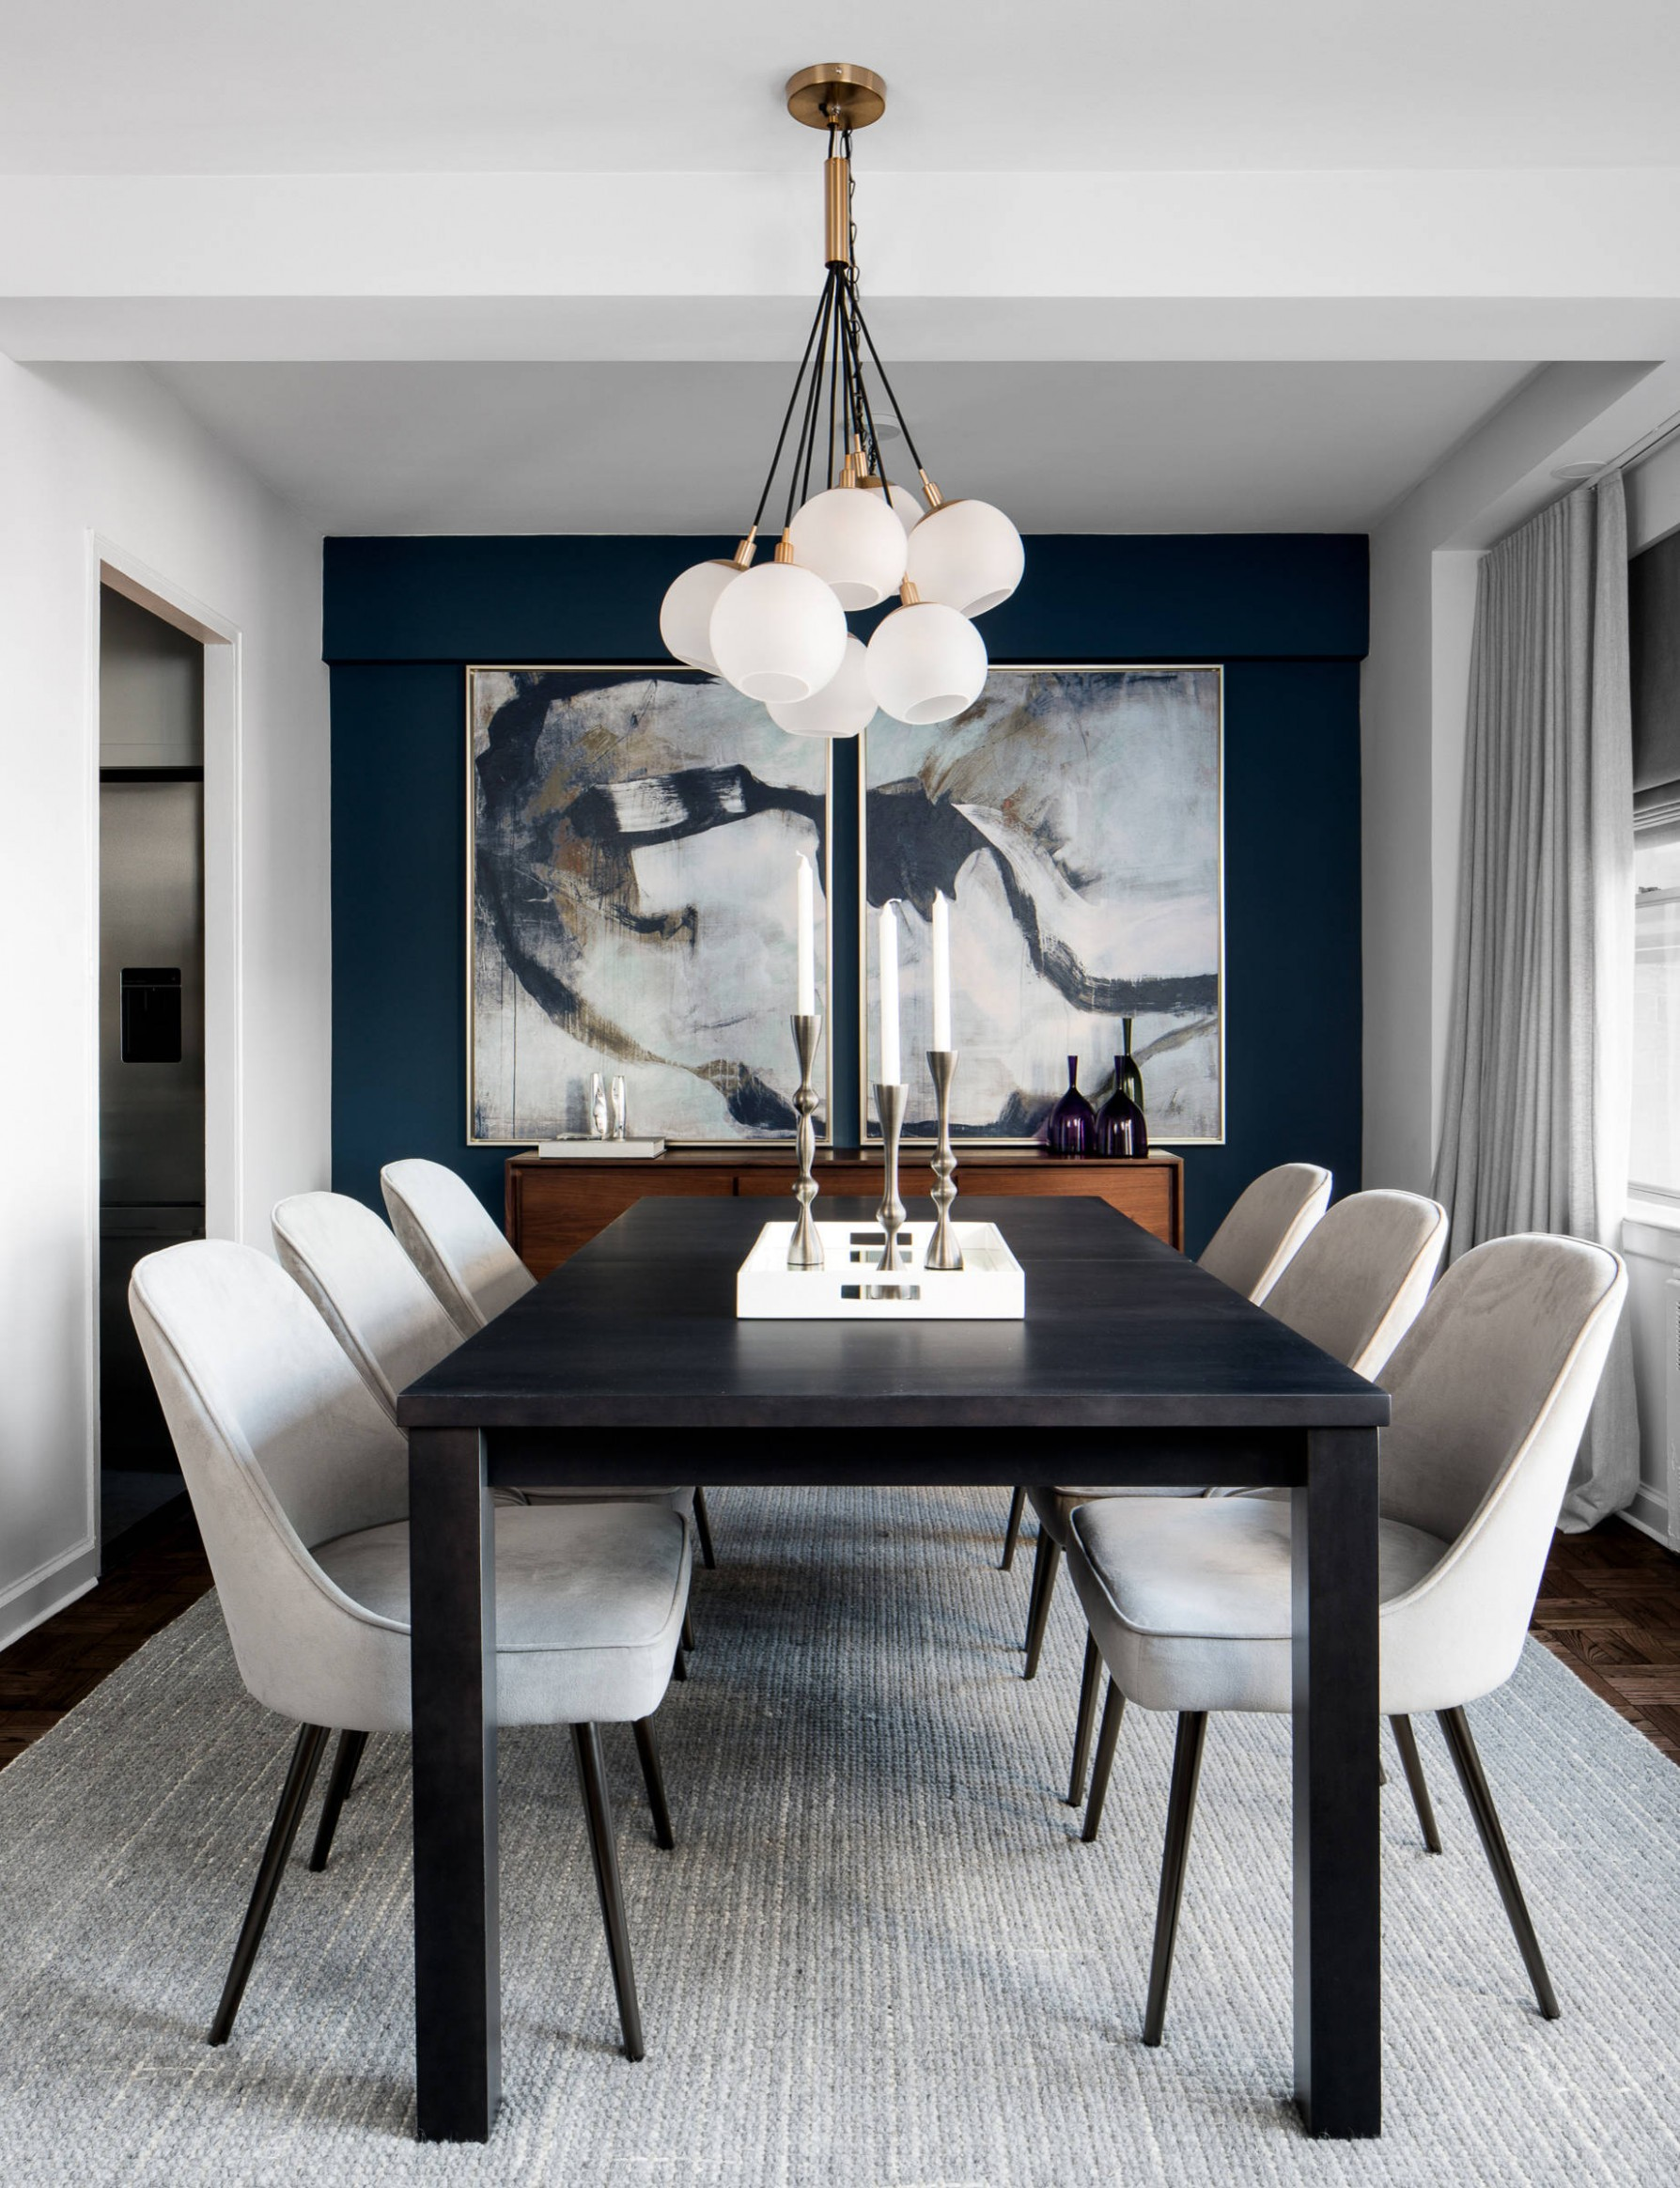 9 Beautiful Small Dining Room Pictures & Ideas  Houzz - Dining Room Area Ideas